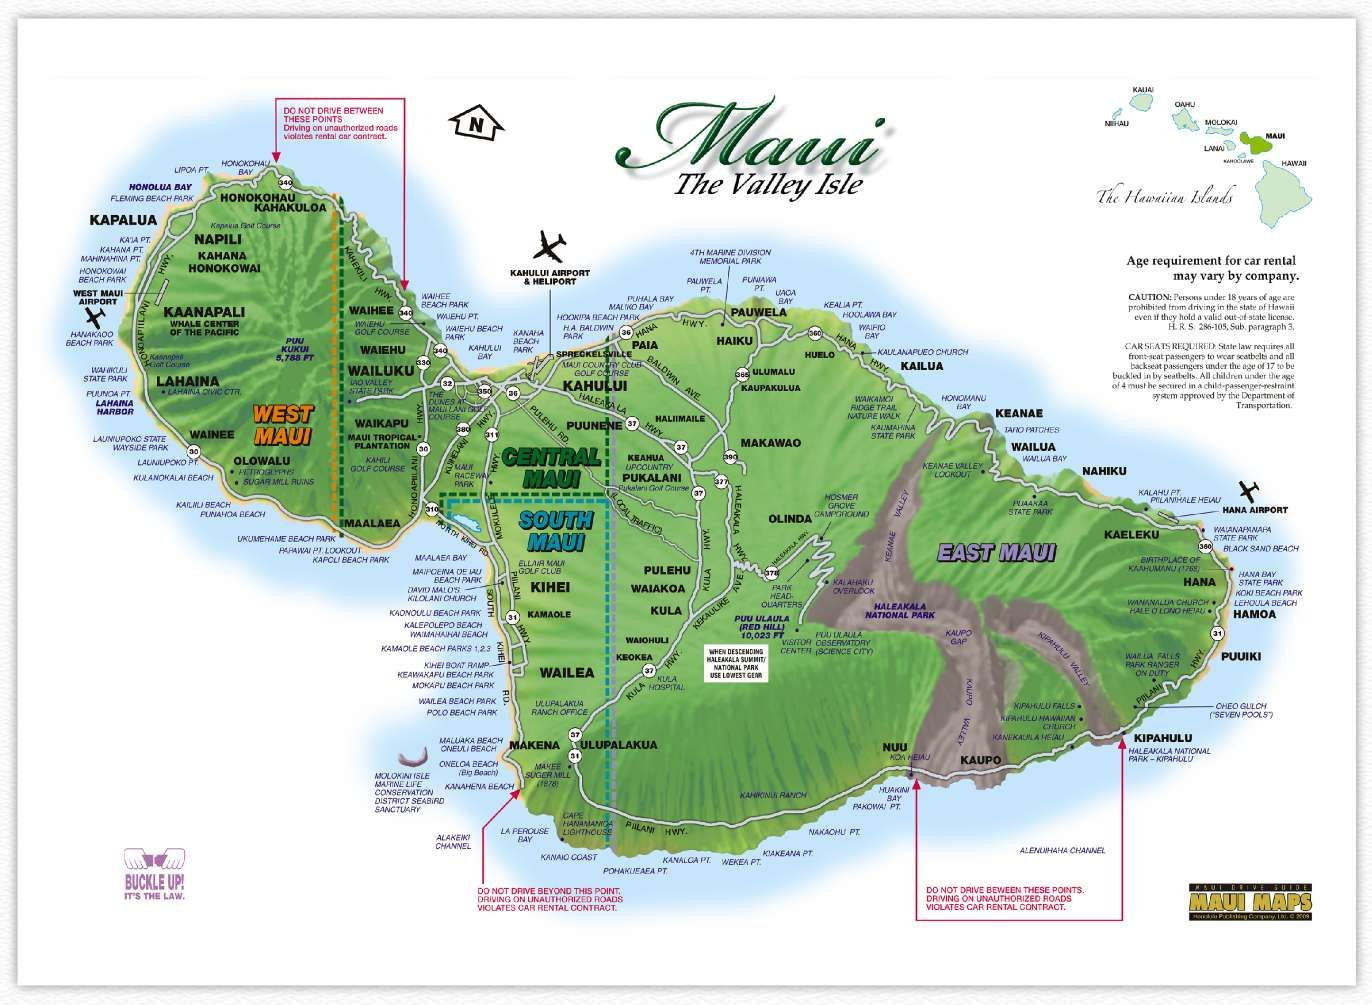 Map to maui free wallpaper for maps full maps maui maps printable maui map beaches hawaii pinterest map of maui maui maps printable maui map beaches hawaii pinterest map of maui within map of maui altavistaventures Gallery